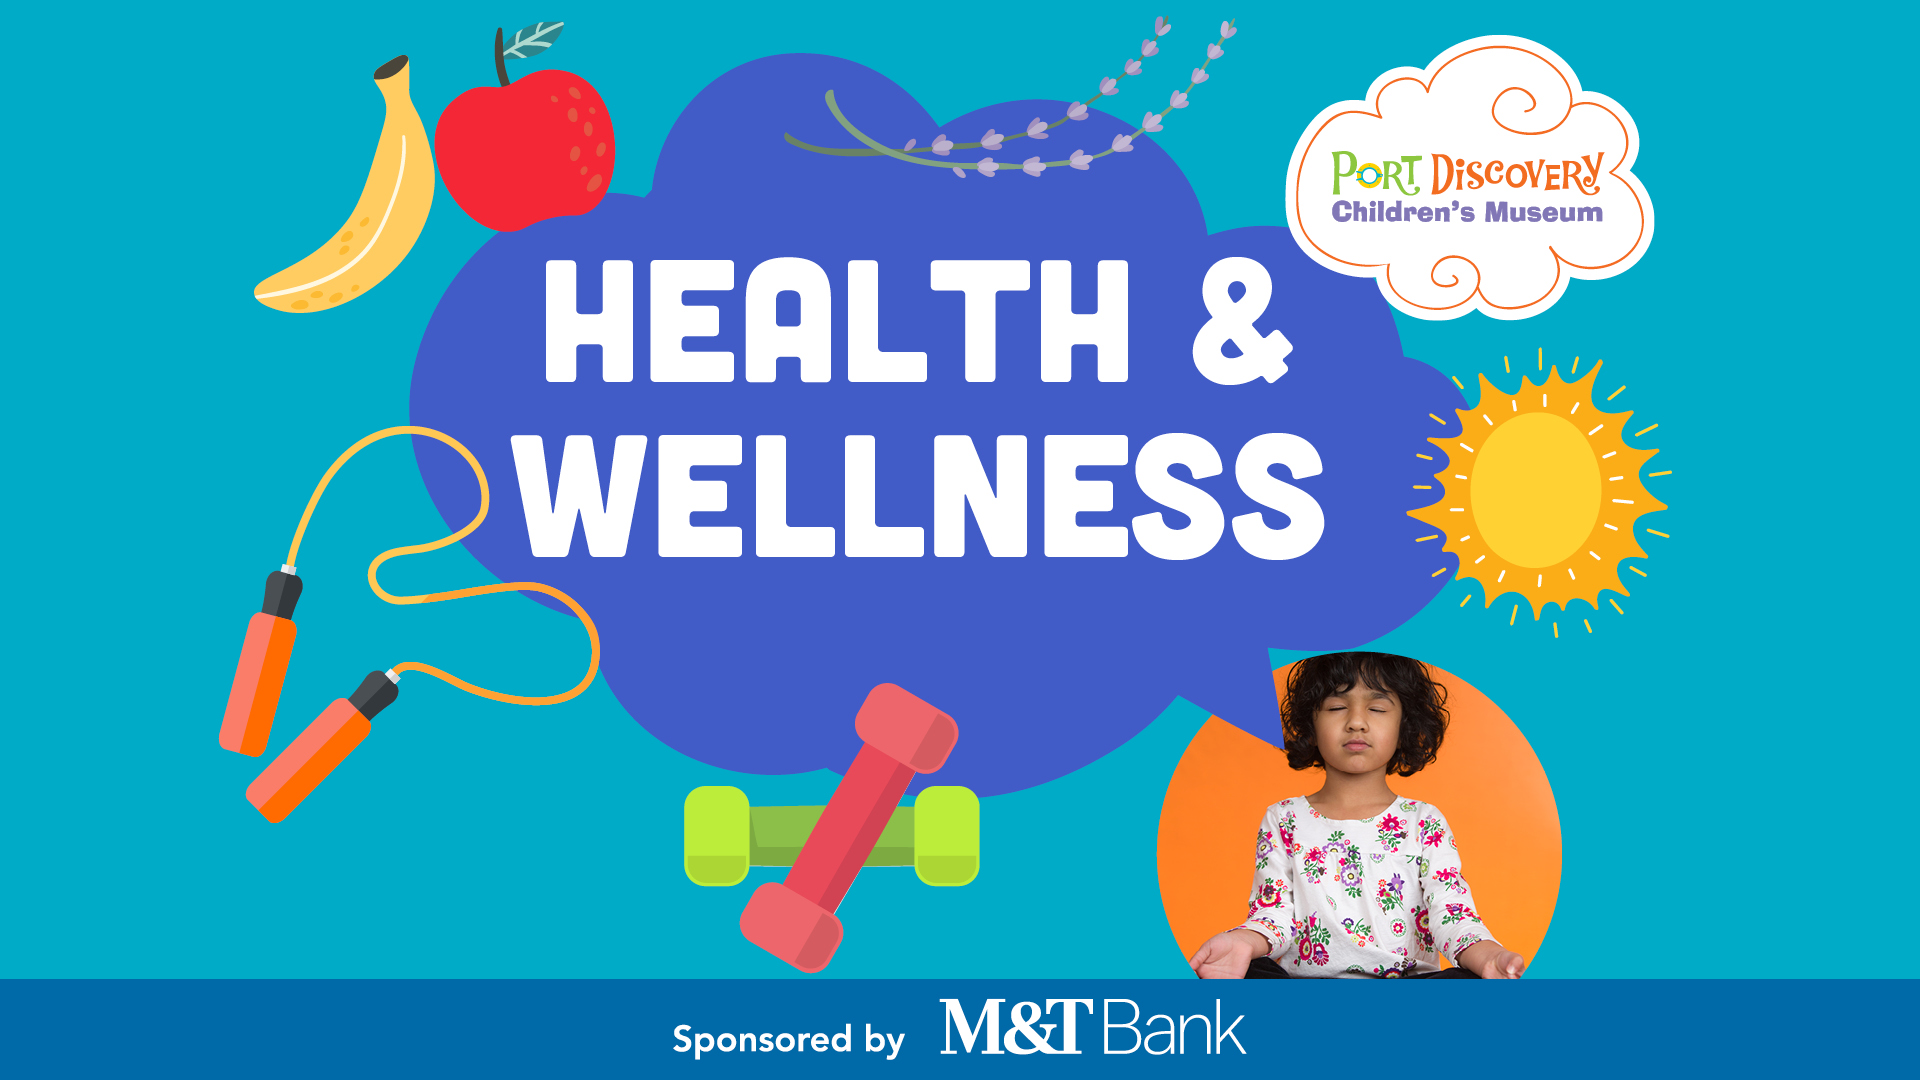 Health & Wellness Play Tips sponsored by M&T Bank